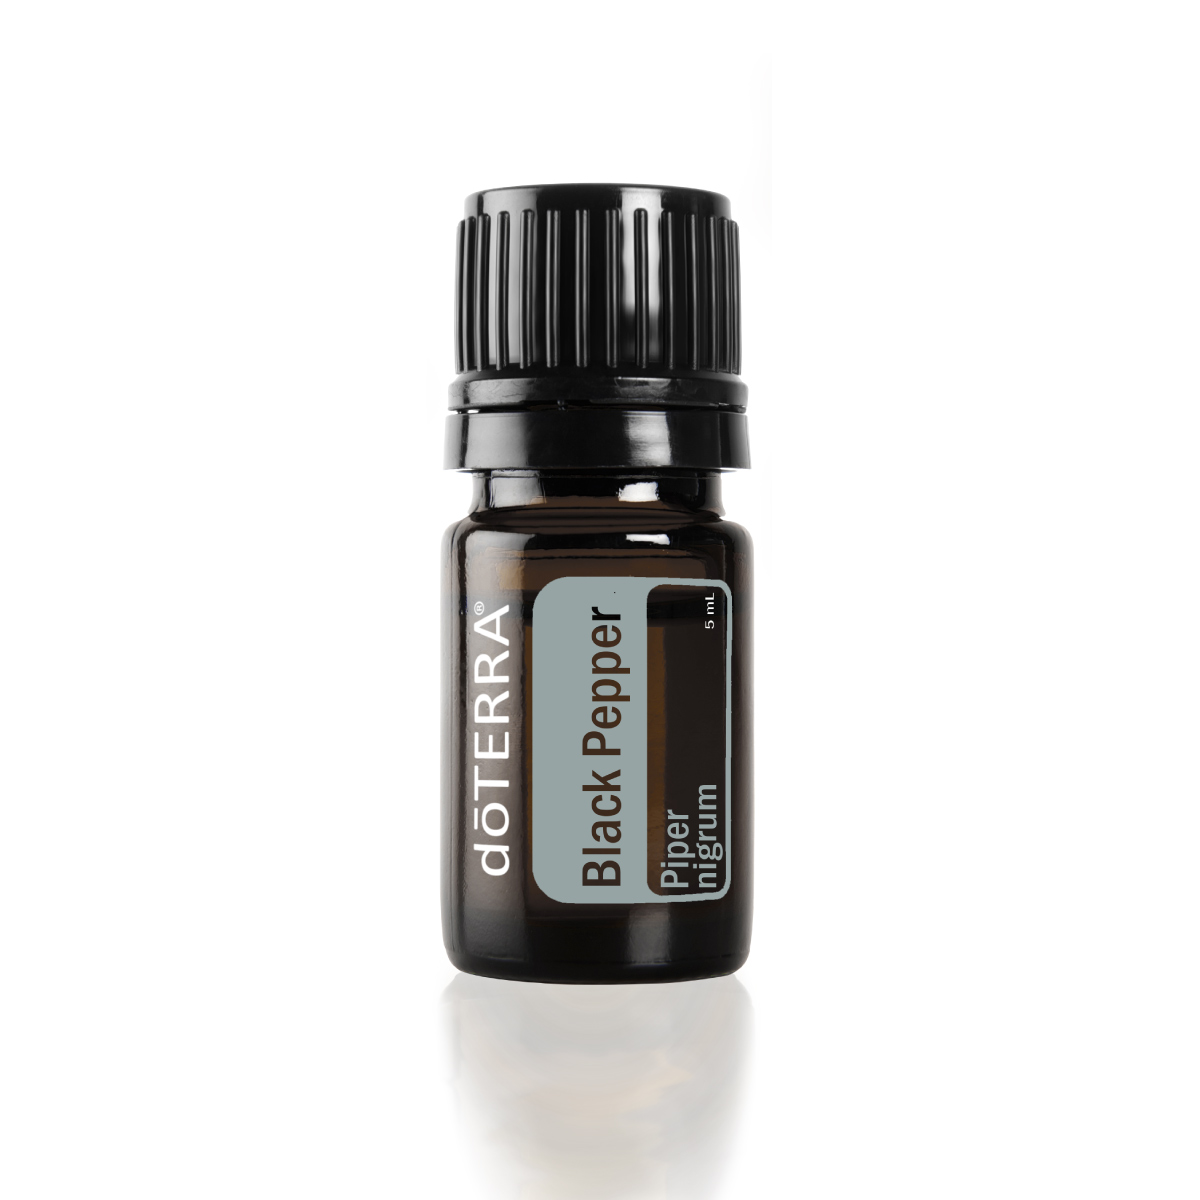 Bottle of doTERRA Black Pepper essential oil. What is Black Pepper oil used for? doTERRA Black Pepper oil is useful for cooking, providing antioxidants, and creating a soothing massage.